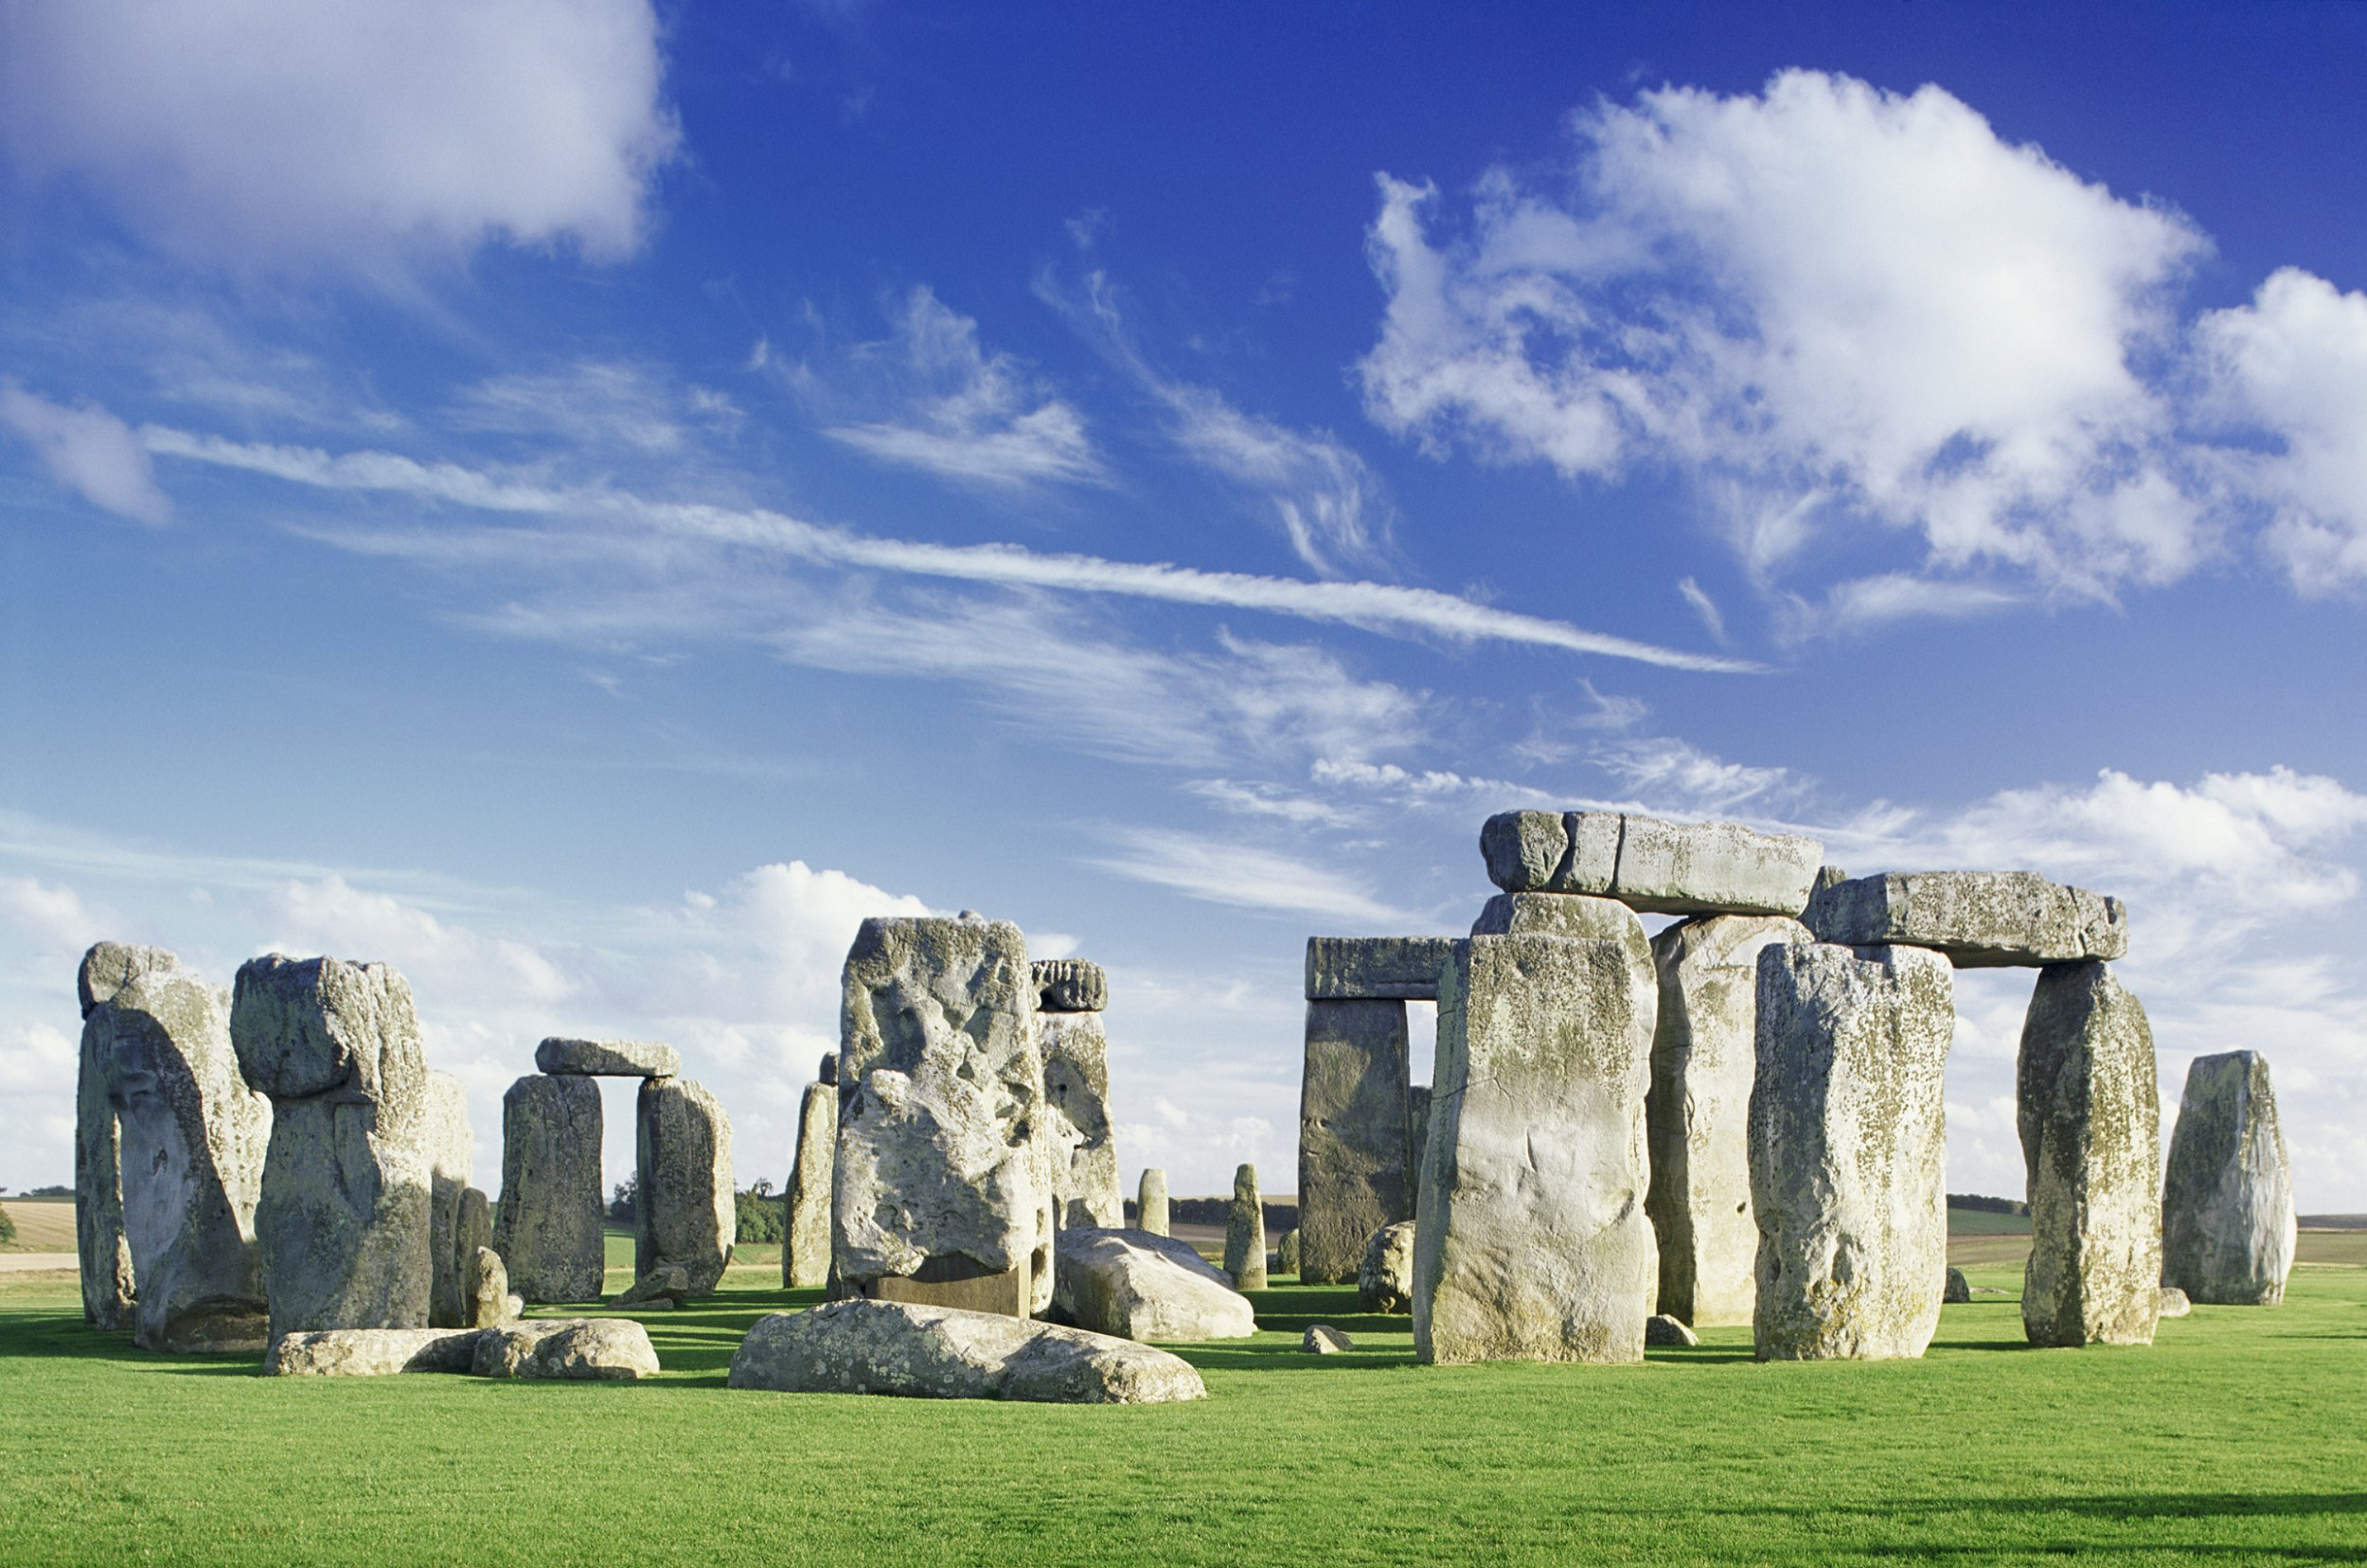 The builders of Stonehenge were descended from Turkish migrants, scientists claim